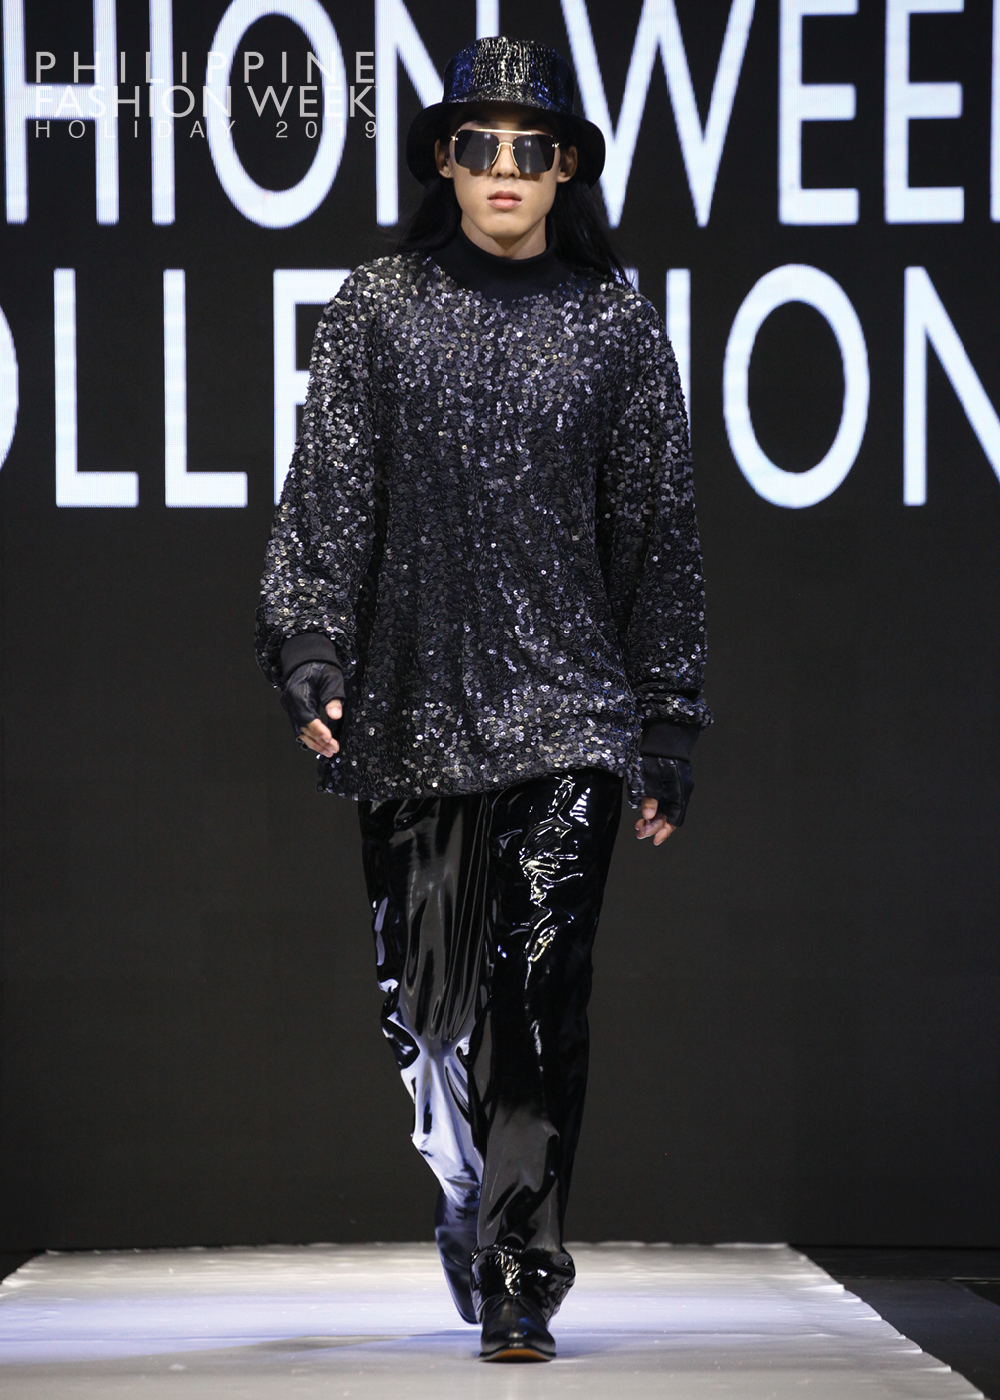 PhFW_collection show18.jpg